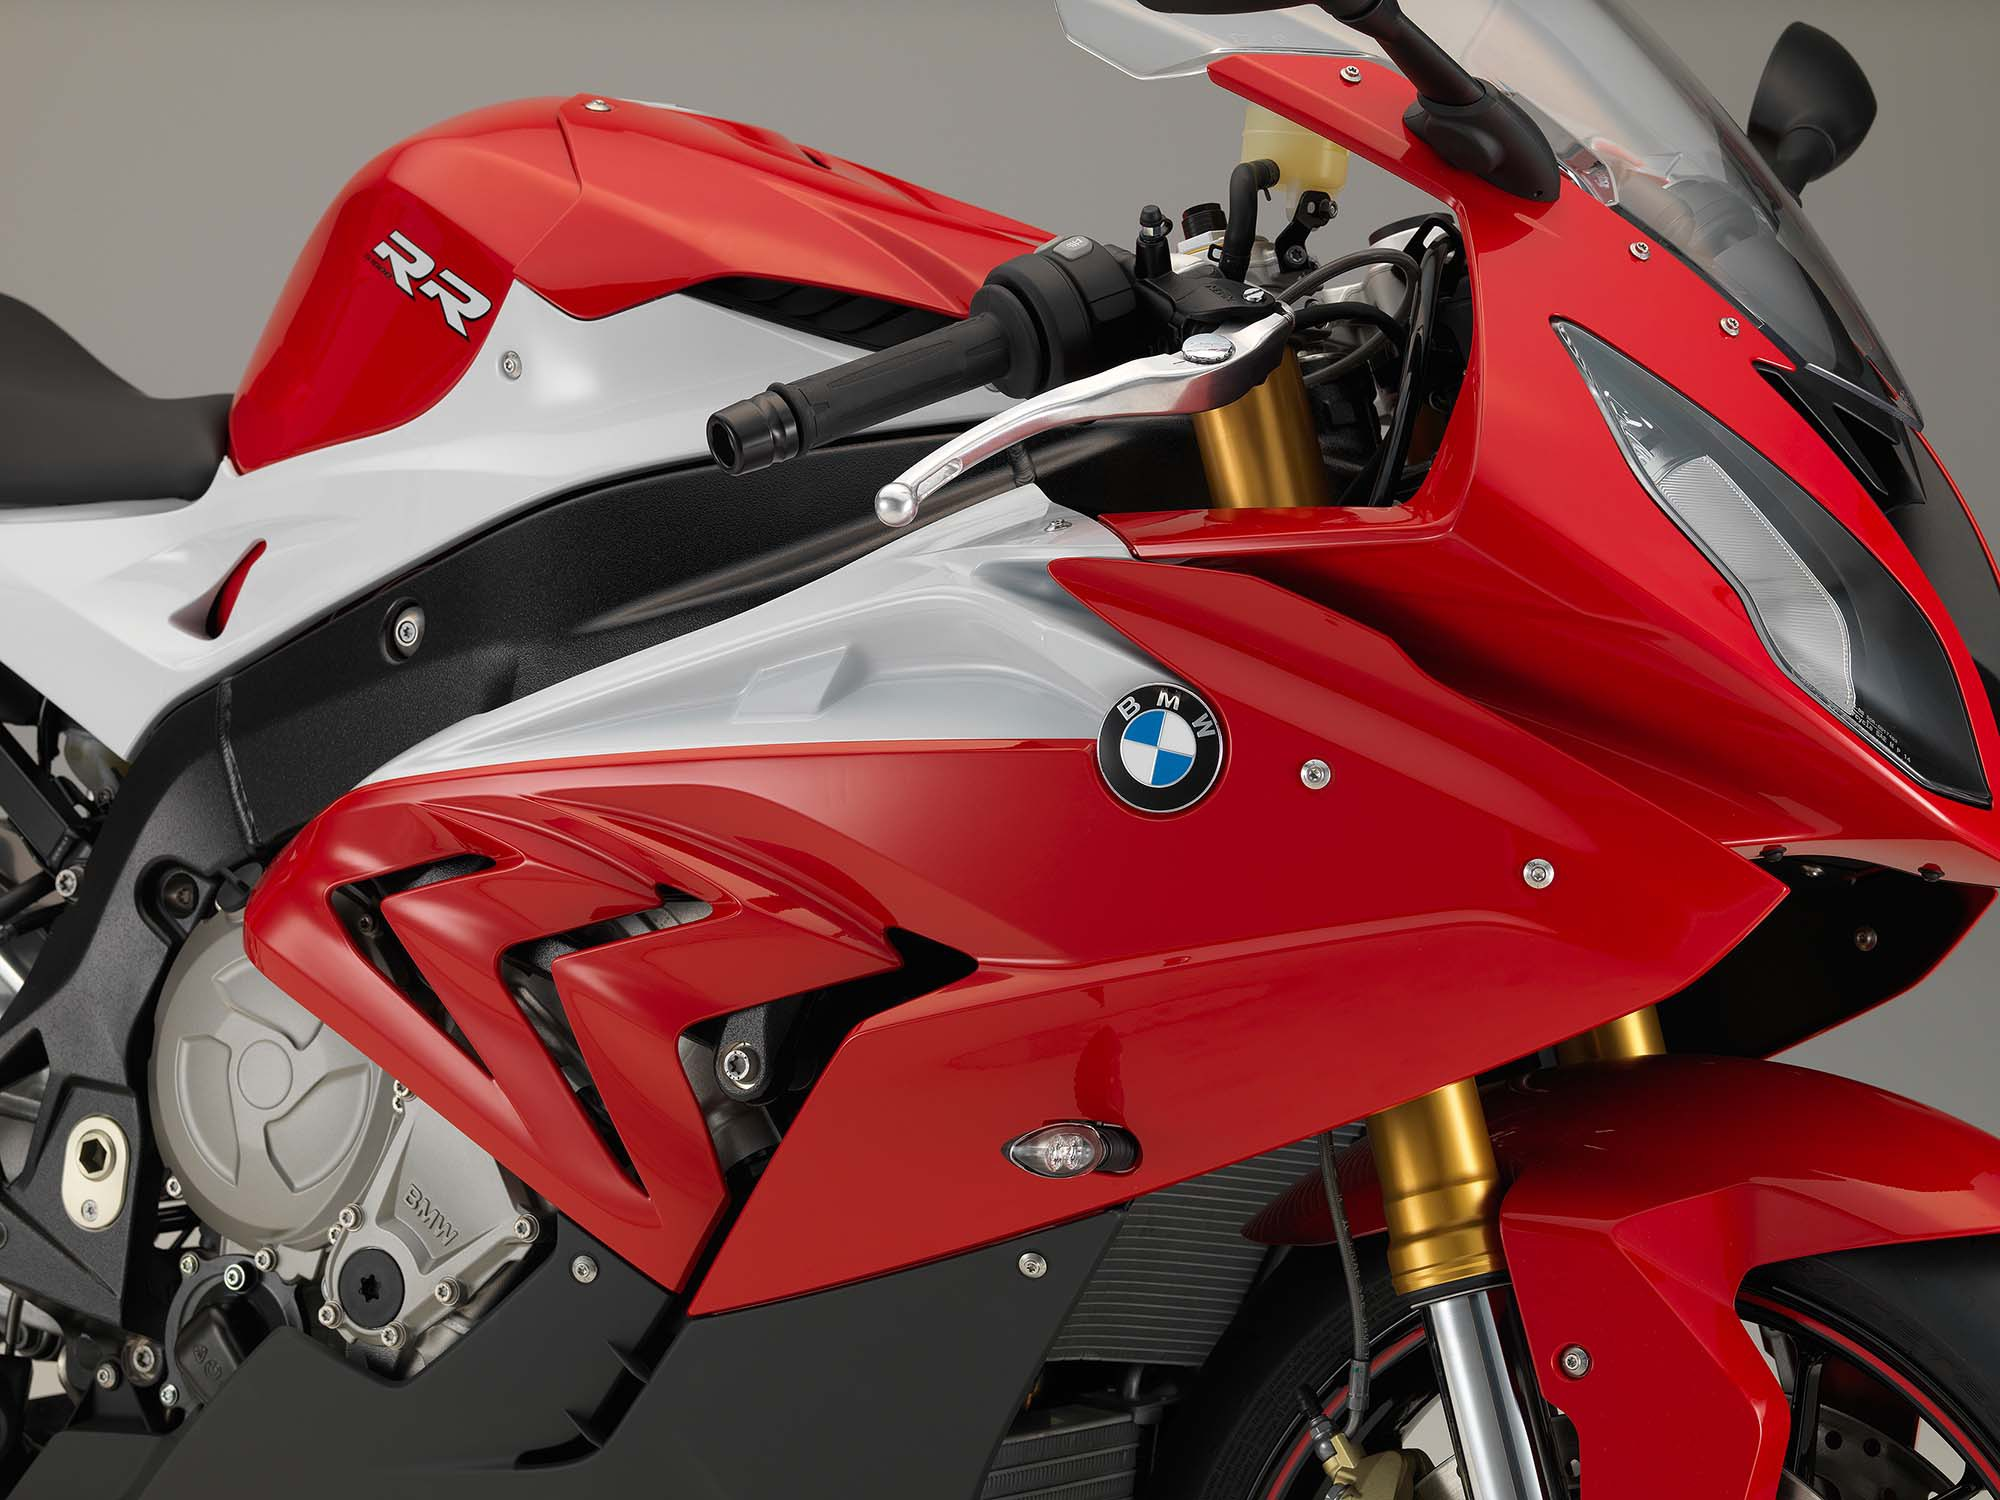 Why Does The Bmw S1000rr Have Asymmetric Headlights And Fairing